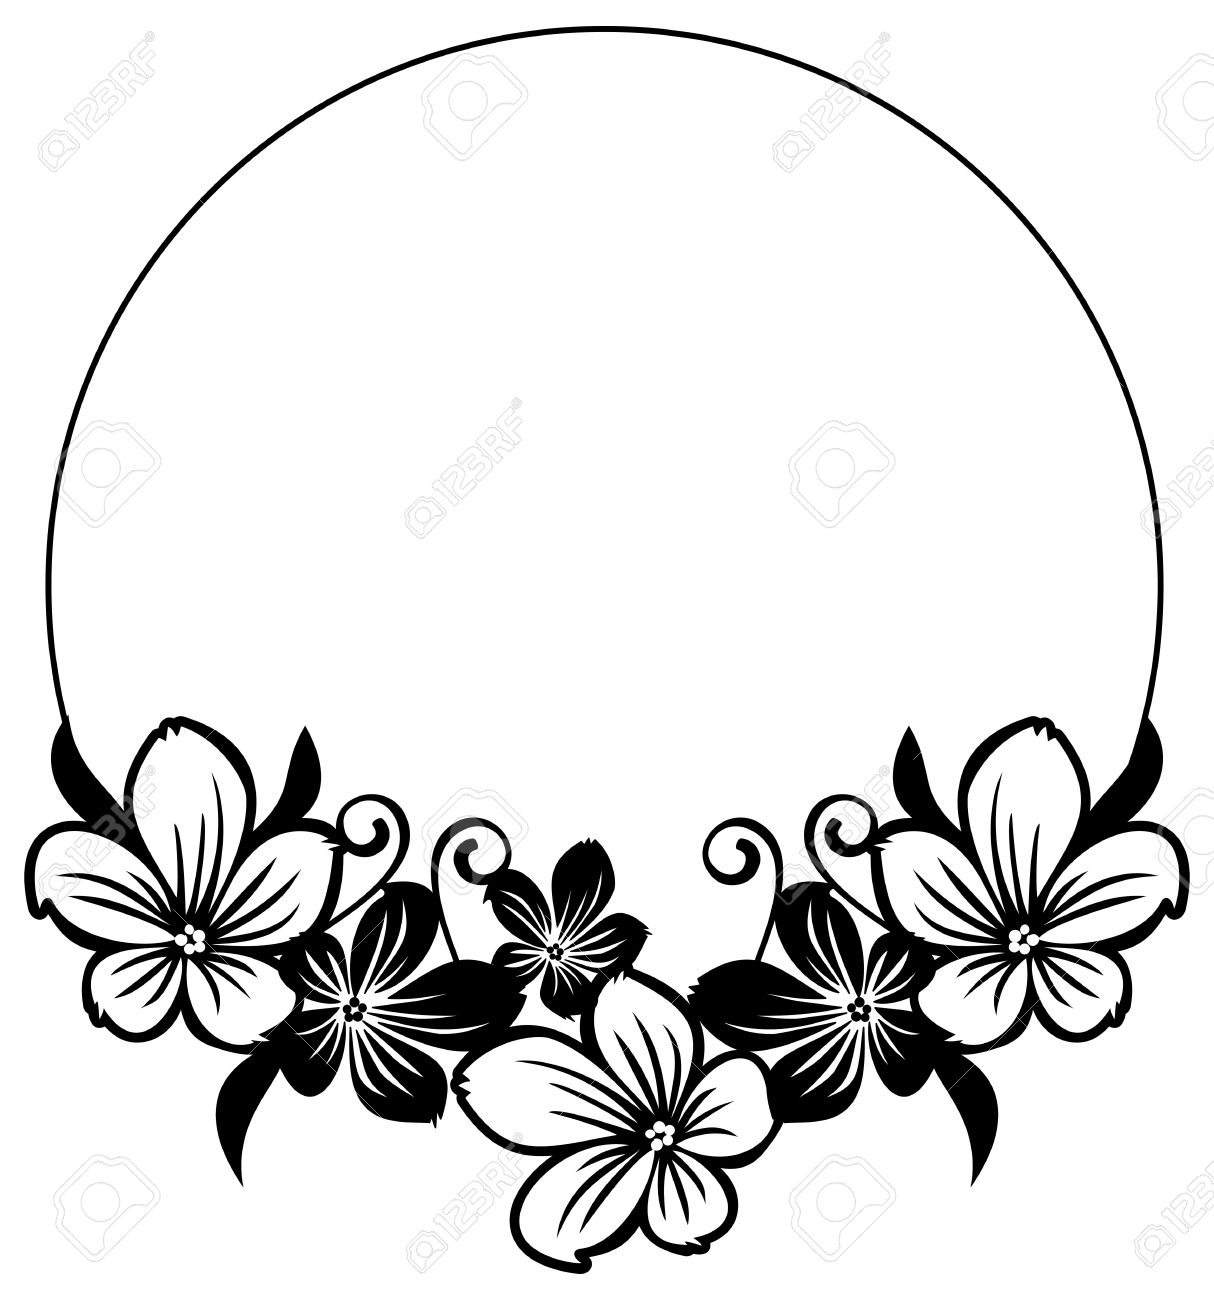 black and white round frame with abstract flowers silhouettes rh 123rf com flower silhouette vector free flower petal silhouette vector